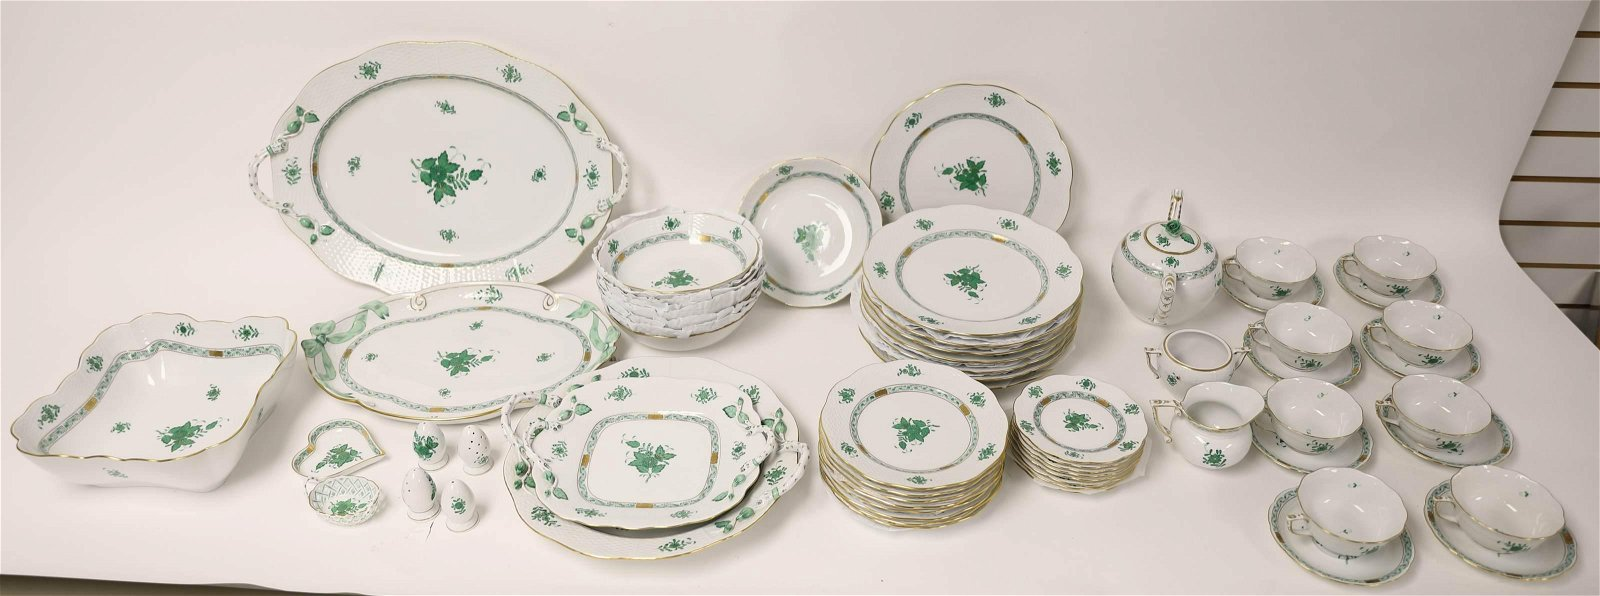 54pc Herend Green Chinese Bouquet China Dinnerware